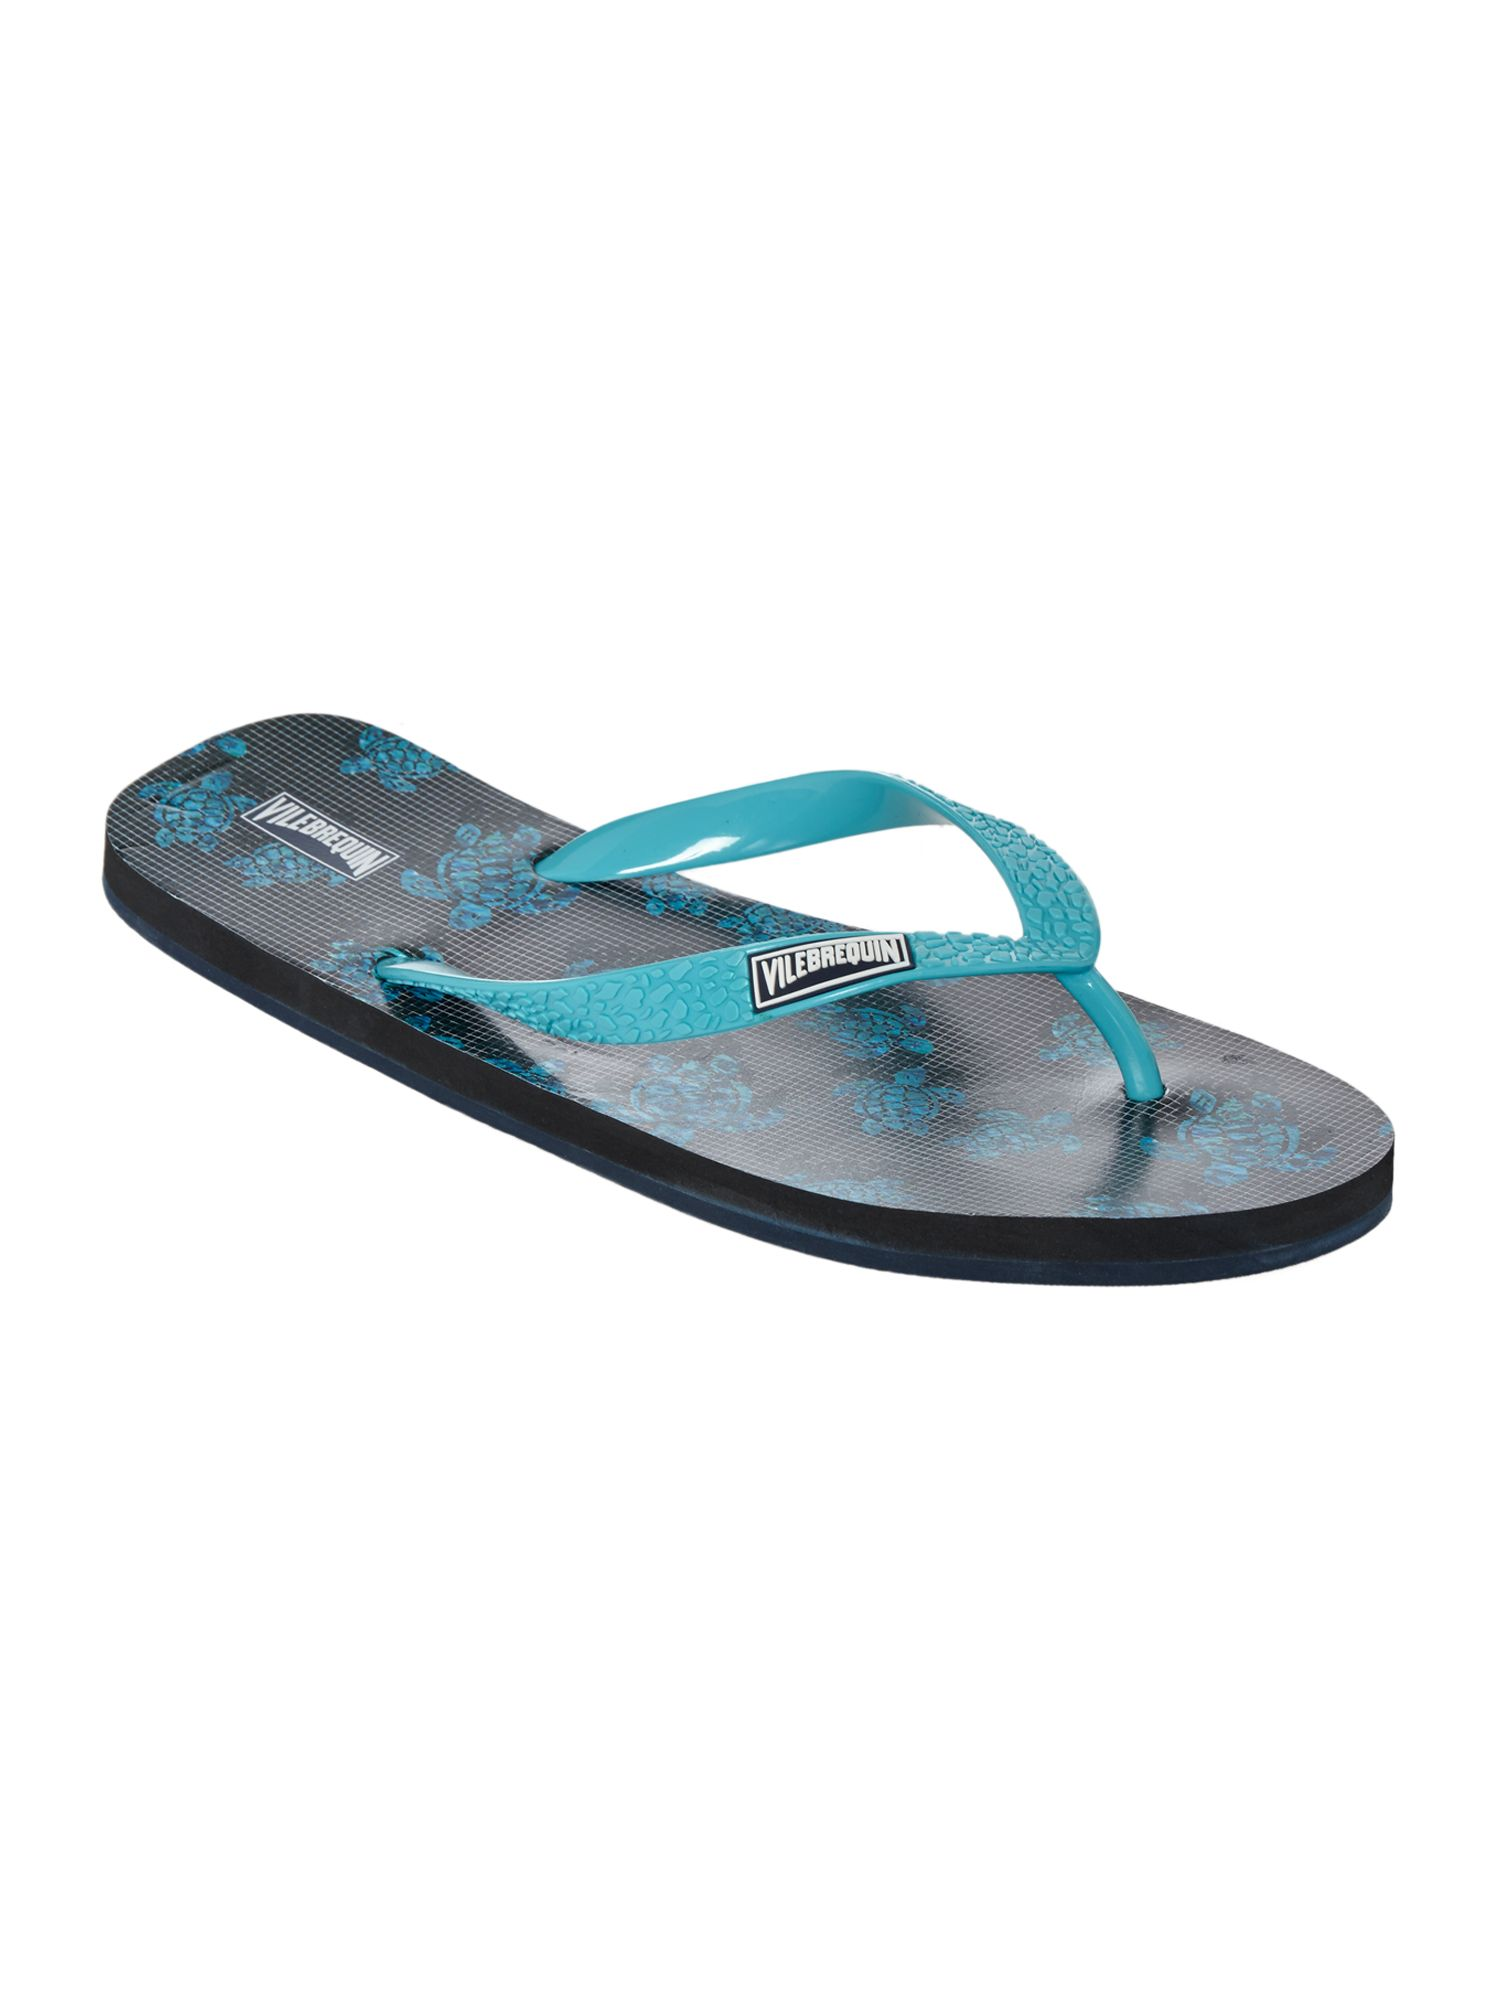 Men's Vilebrequin Turtle Print Flip Flops, Multi-Coloured